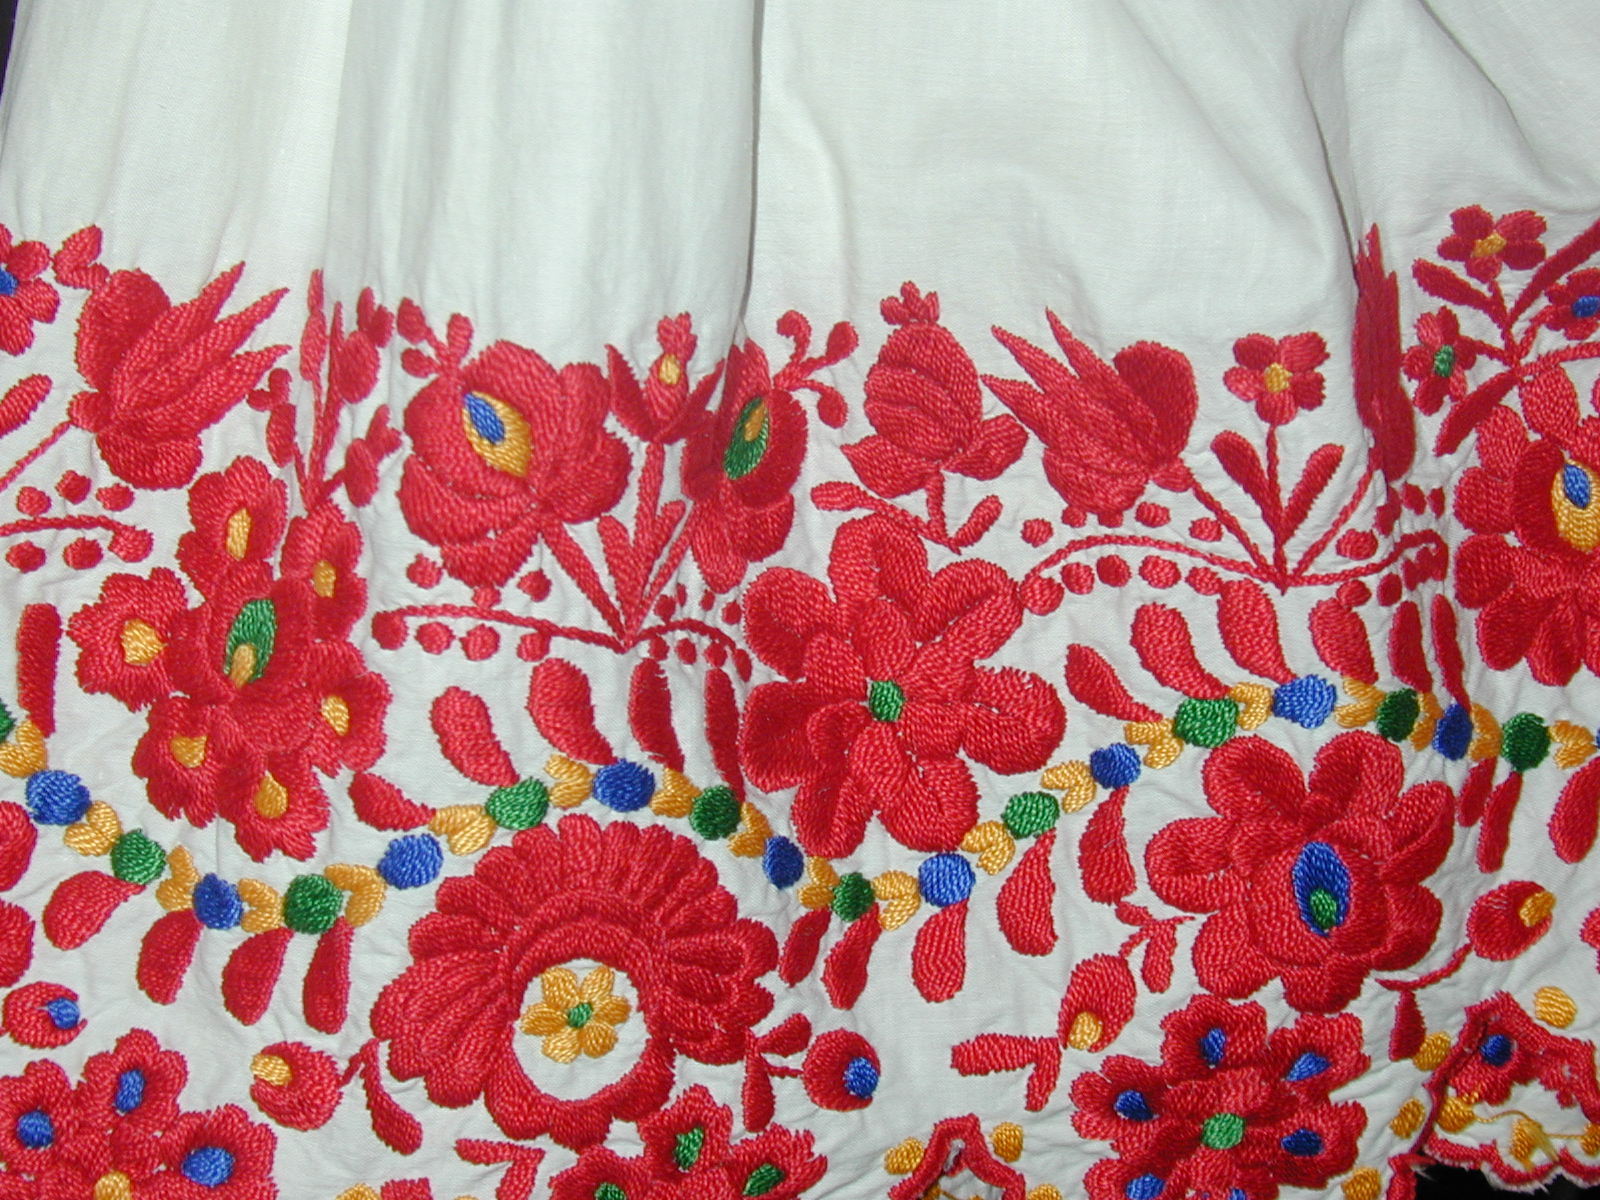 Detail of shirtsleeve with Matyo embroidery